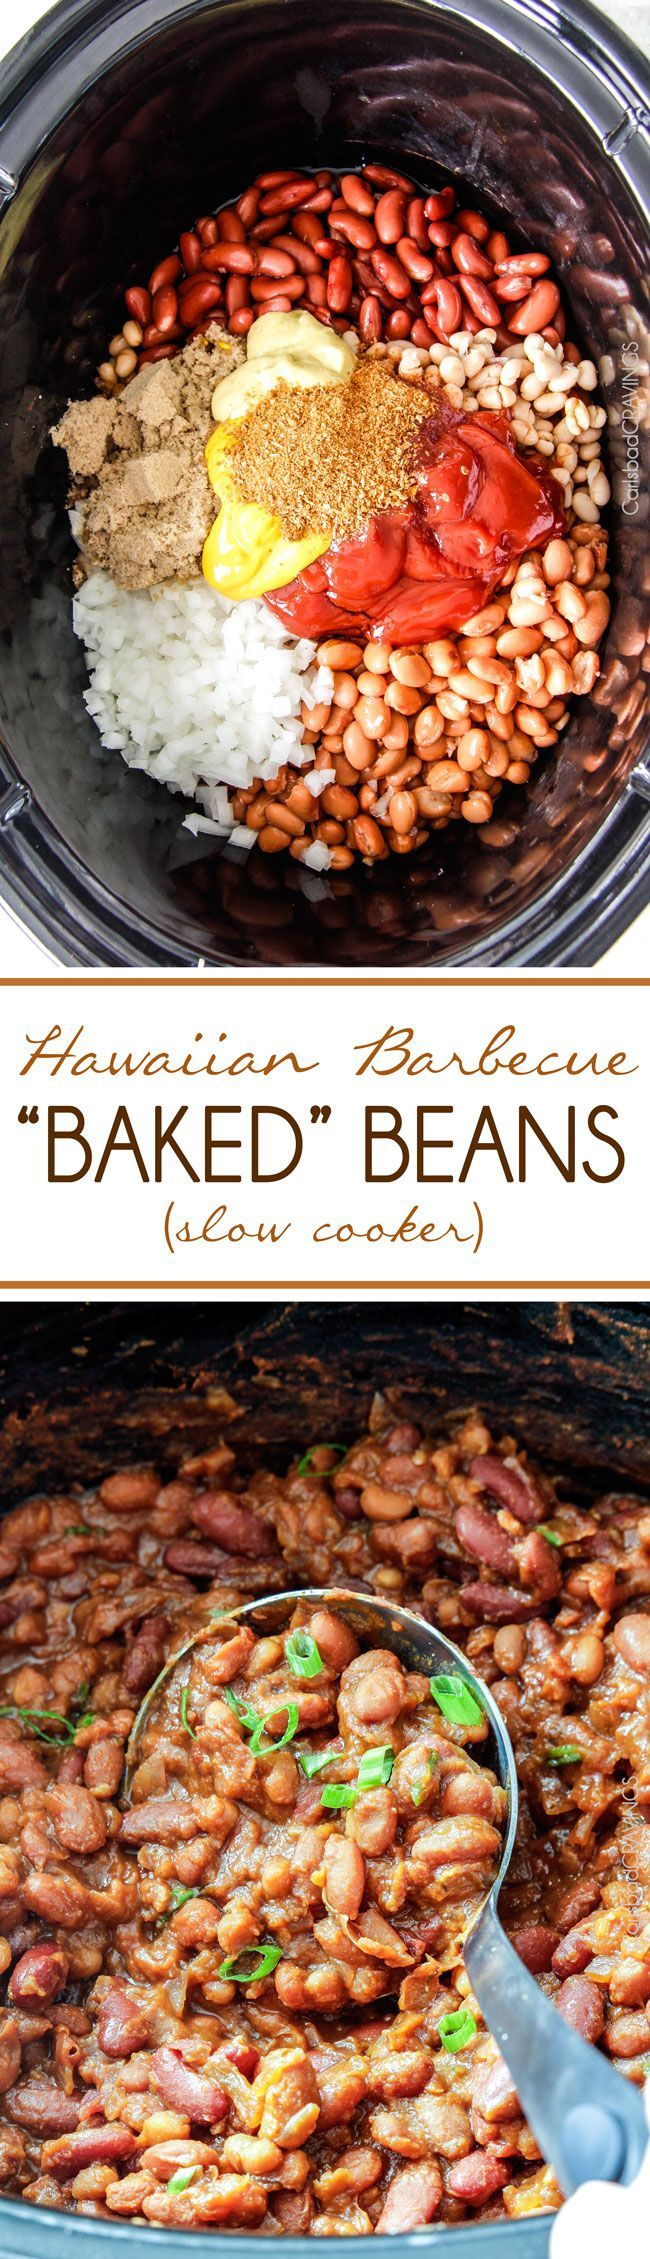 """Slow Cooker Hawaiian Barbecue """"Baked"""" Beans simmered in a pineapple infused barbecue bath enlivened with just the right kick of Cajun spices. These beans are a real crowd pleaser and couldn't be any easier!! @carlsbadcraving"""